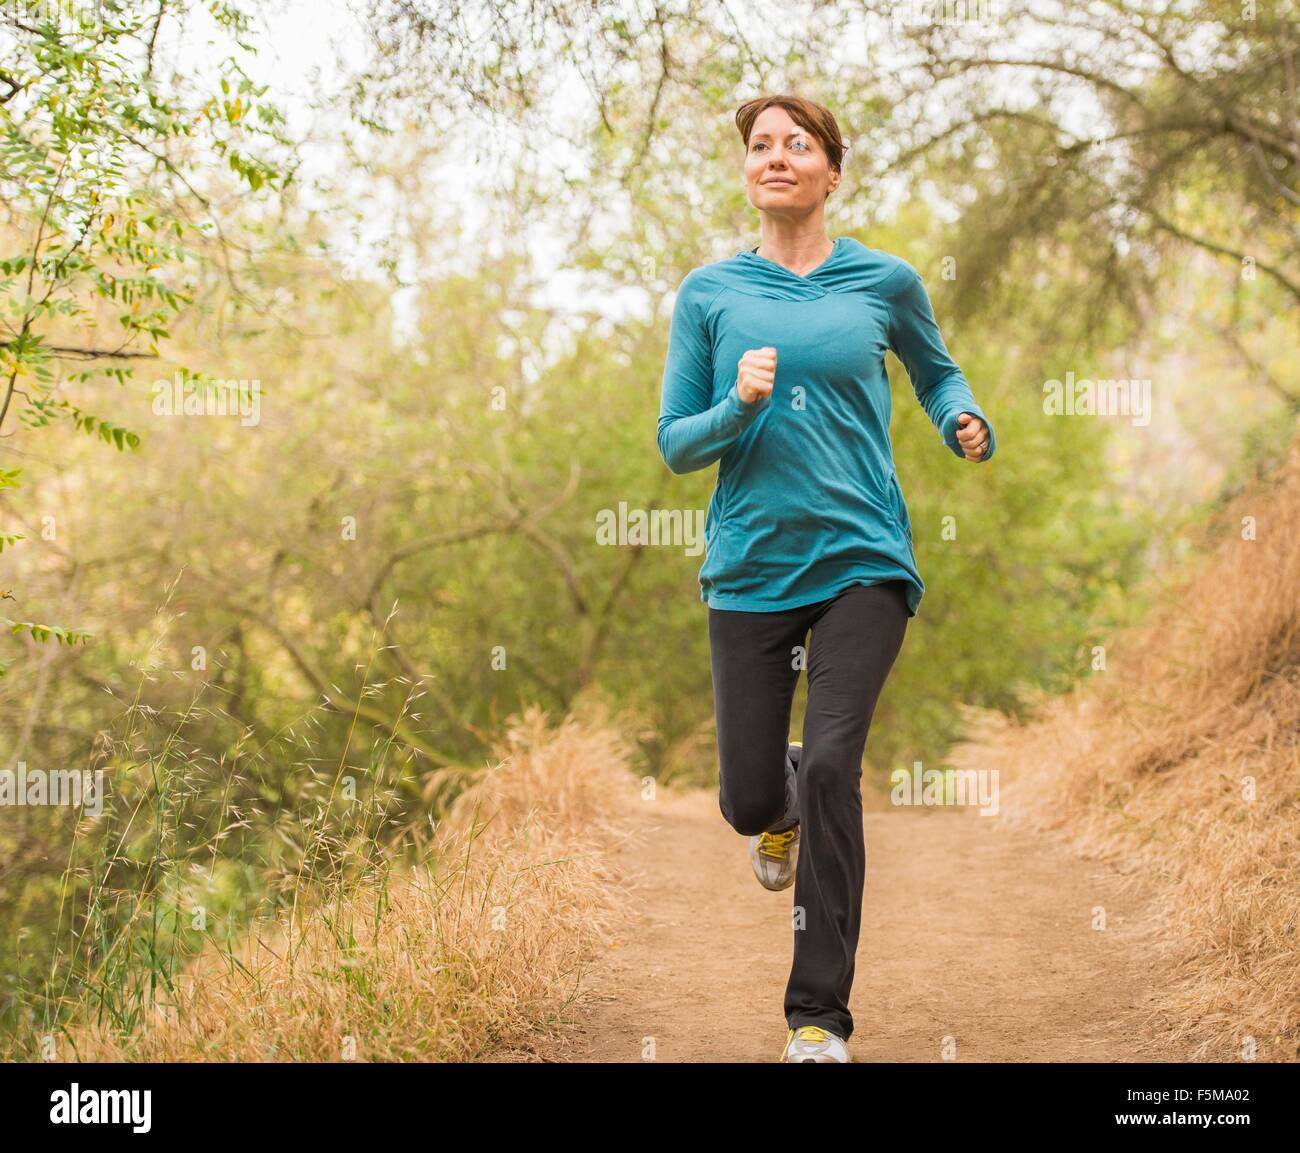 Mature woman running through forest - Stock Image